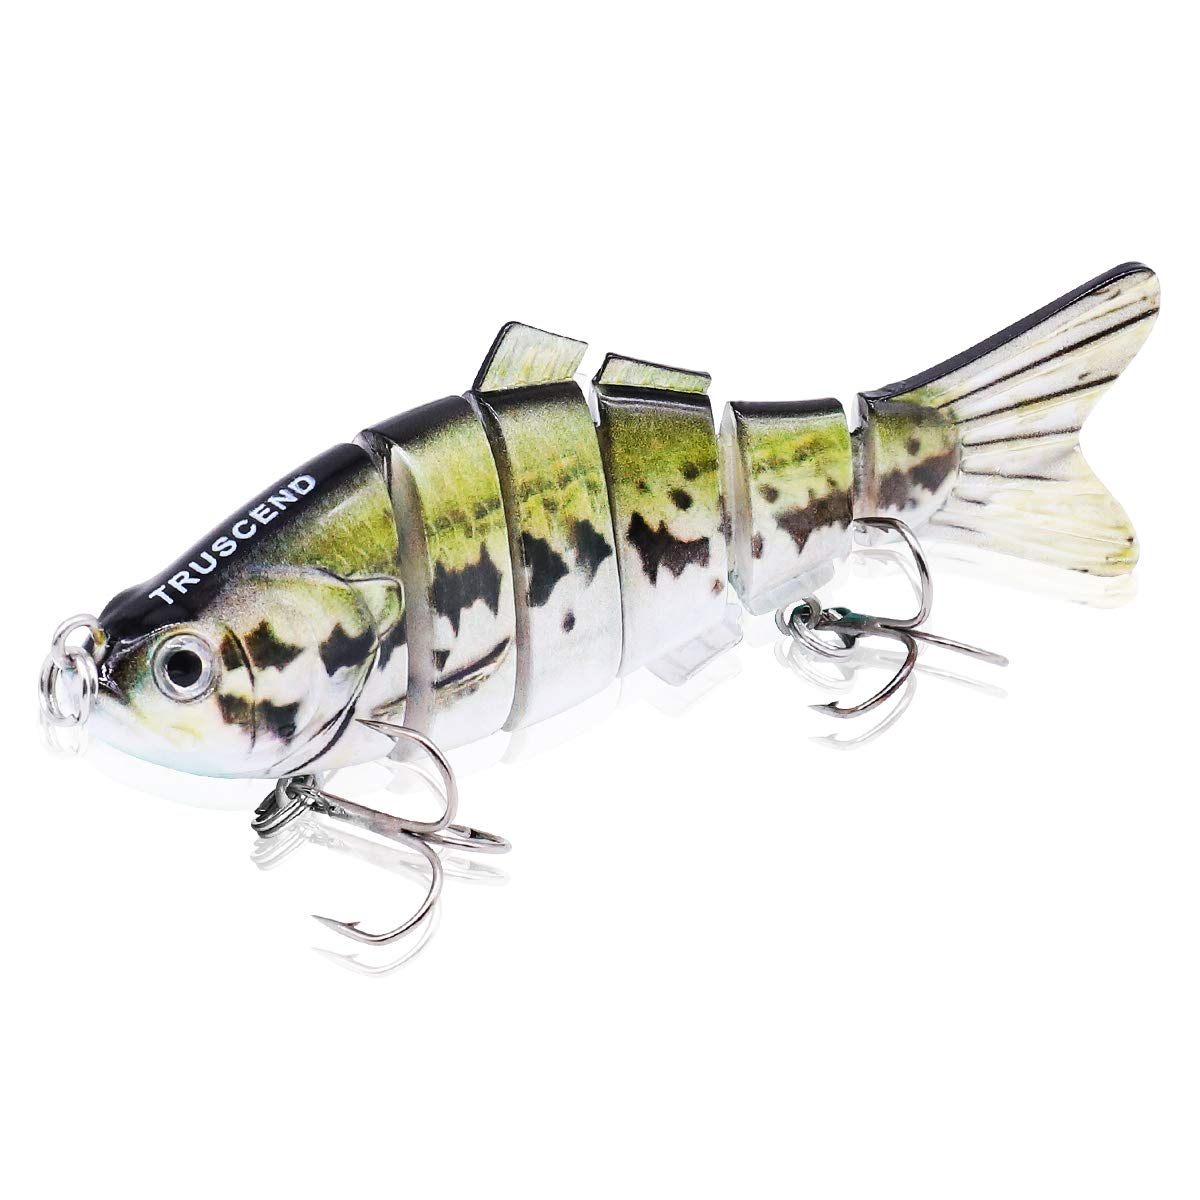 TRUSCEND Swimbaits Glide Baits for Bass Fishing Lures Crankbait Jointed Trout Swimbait with Mustad Hooks (S-4)